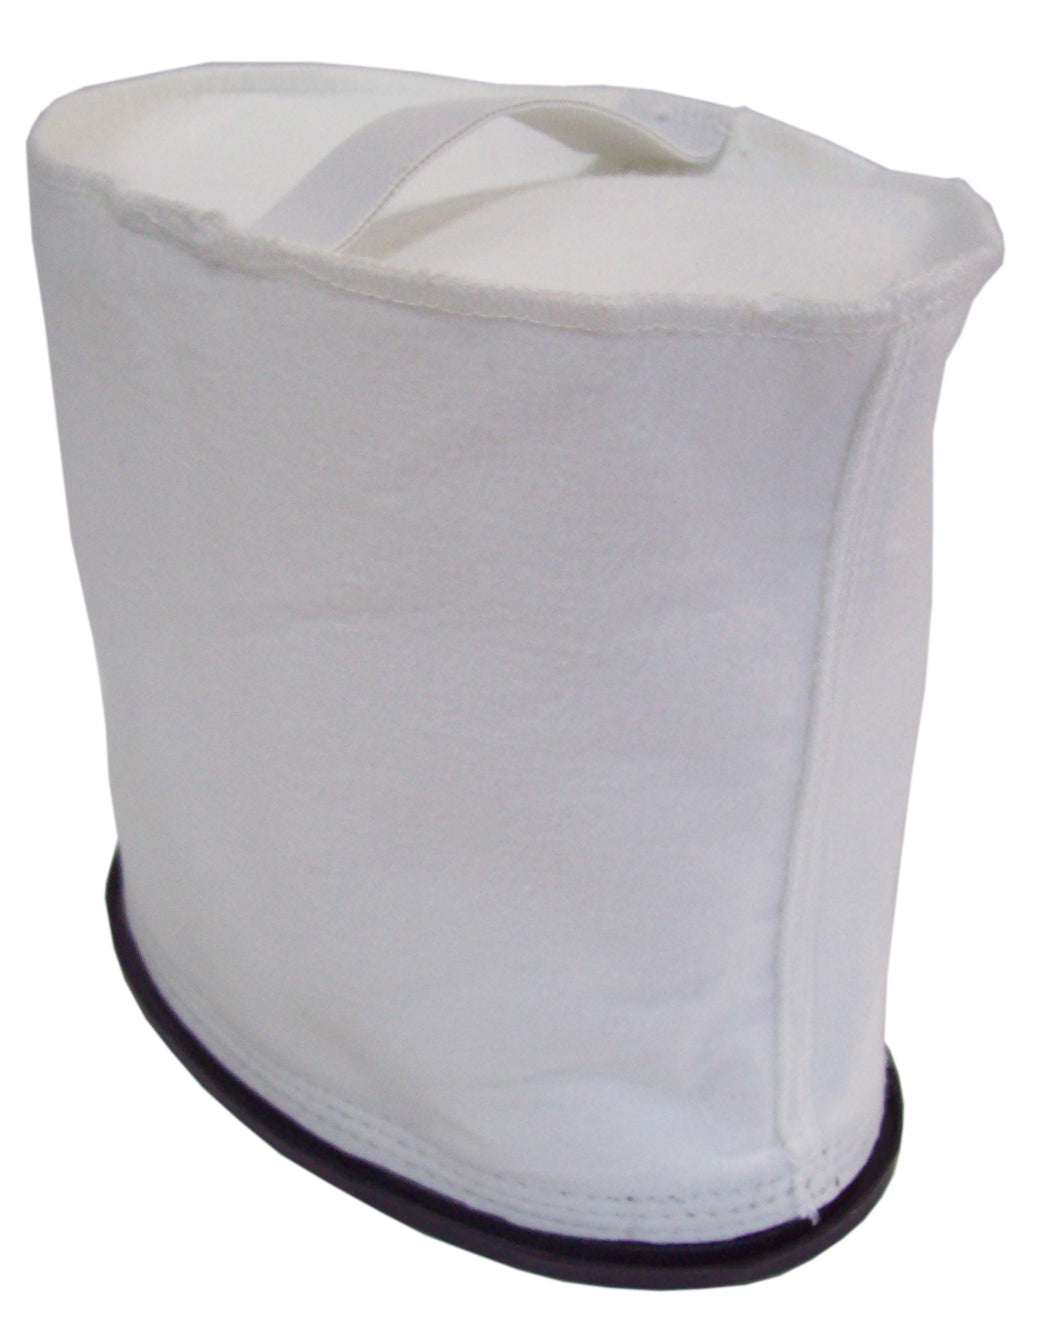 FILTA ROCKET VAC XP CLOTH BAG